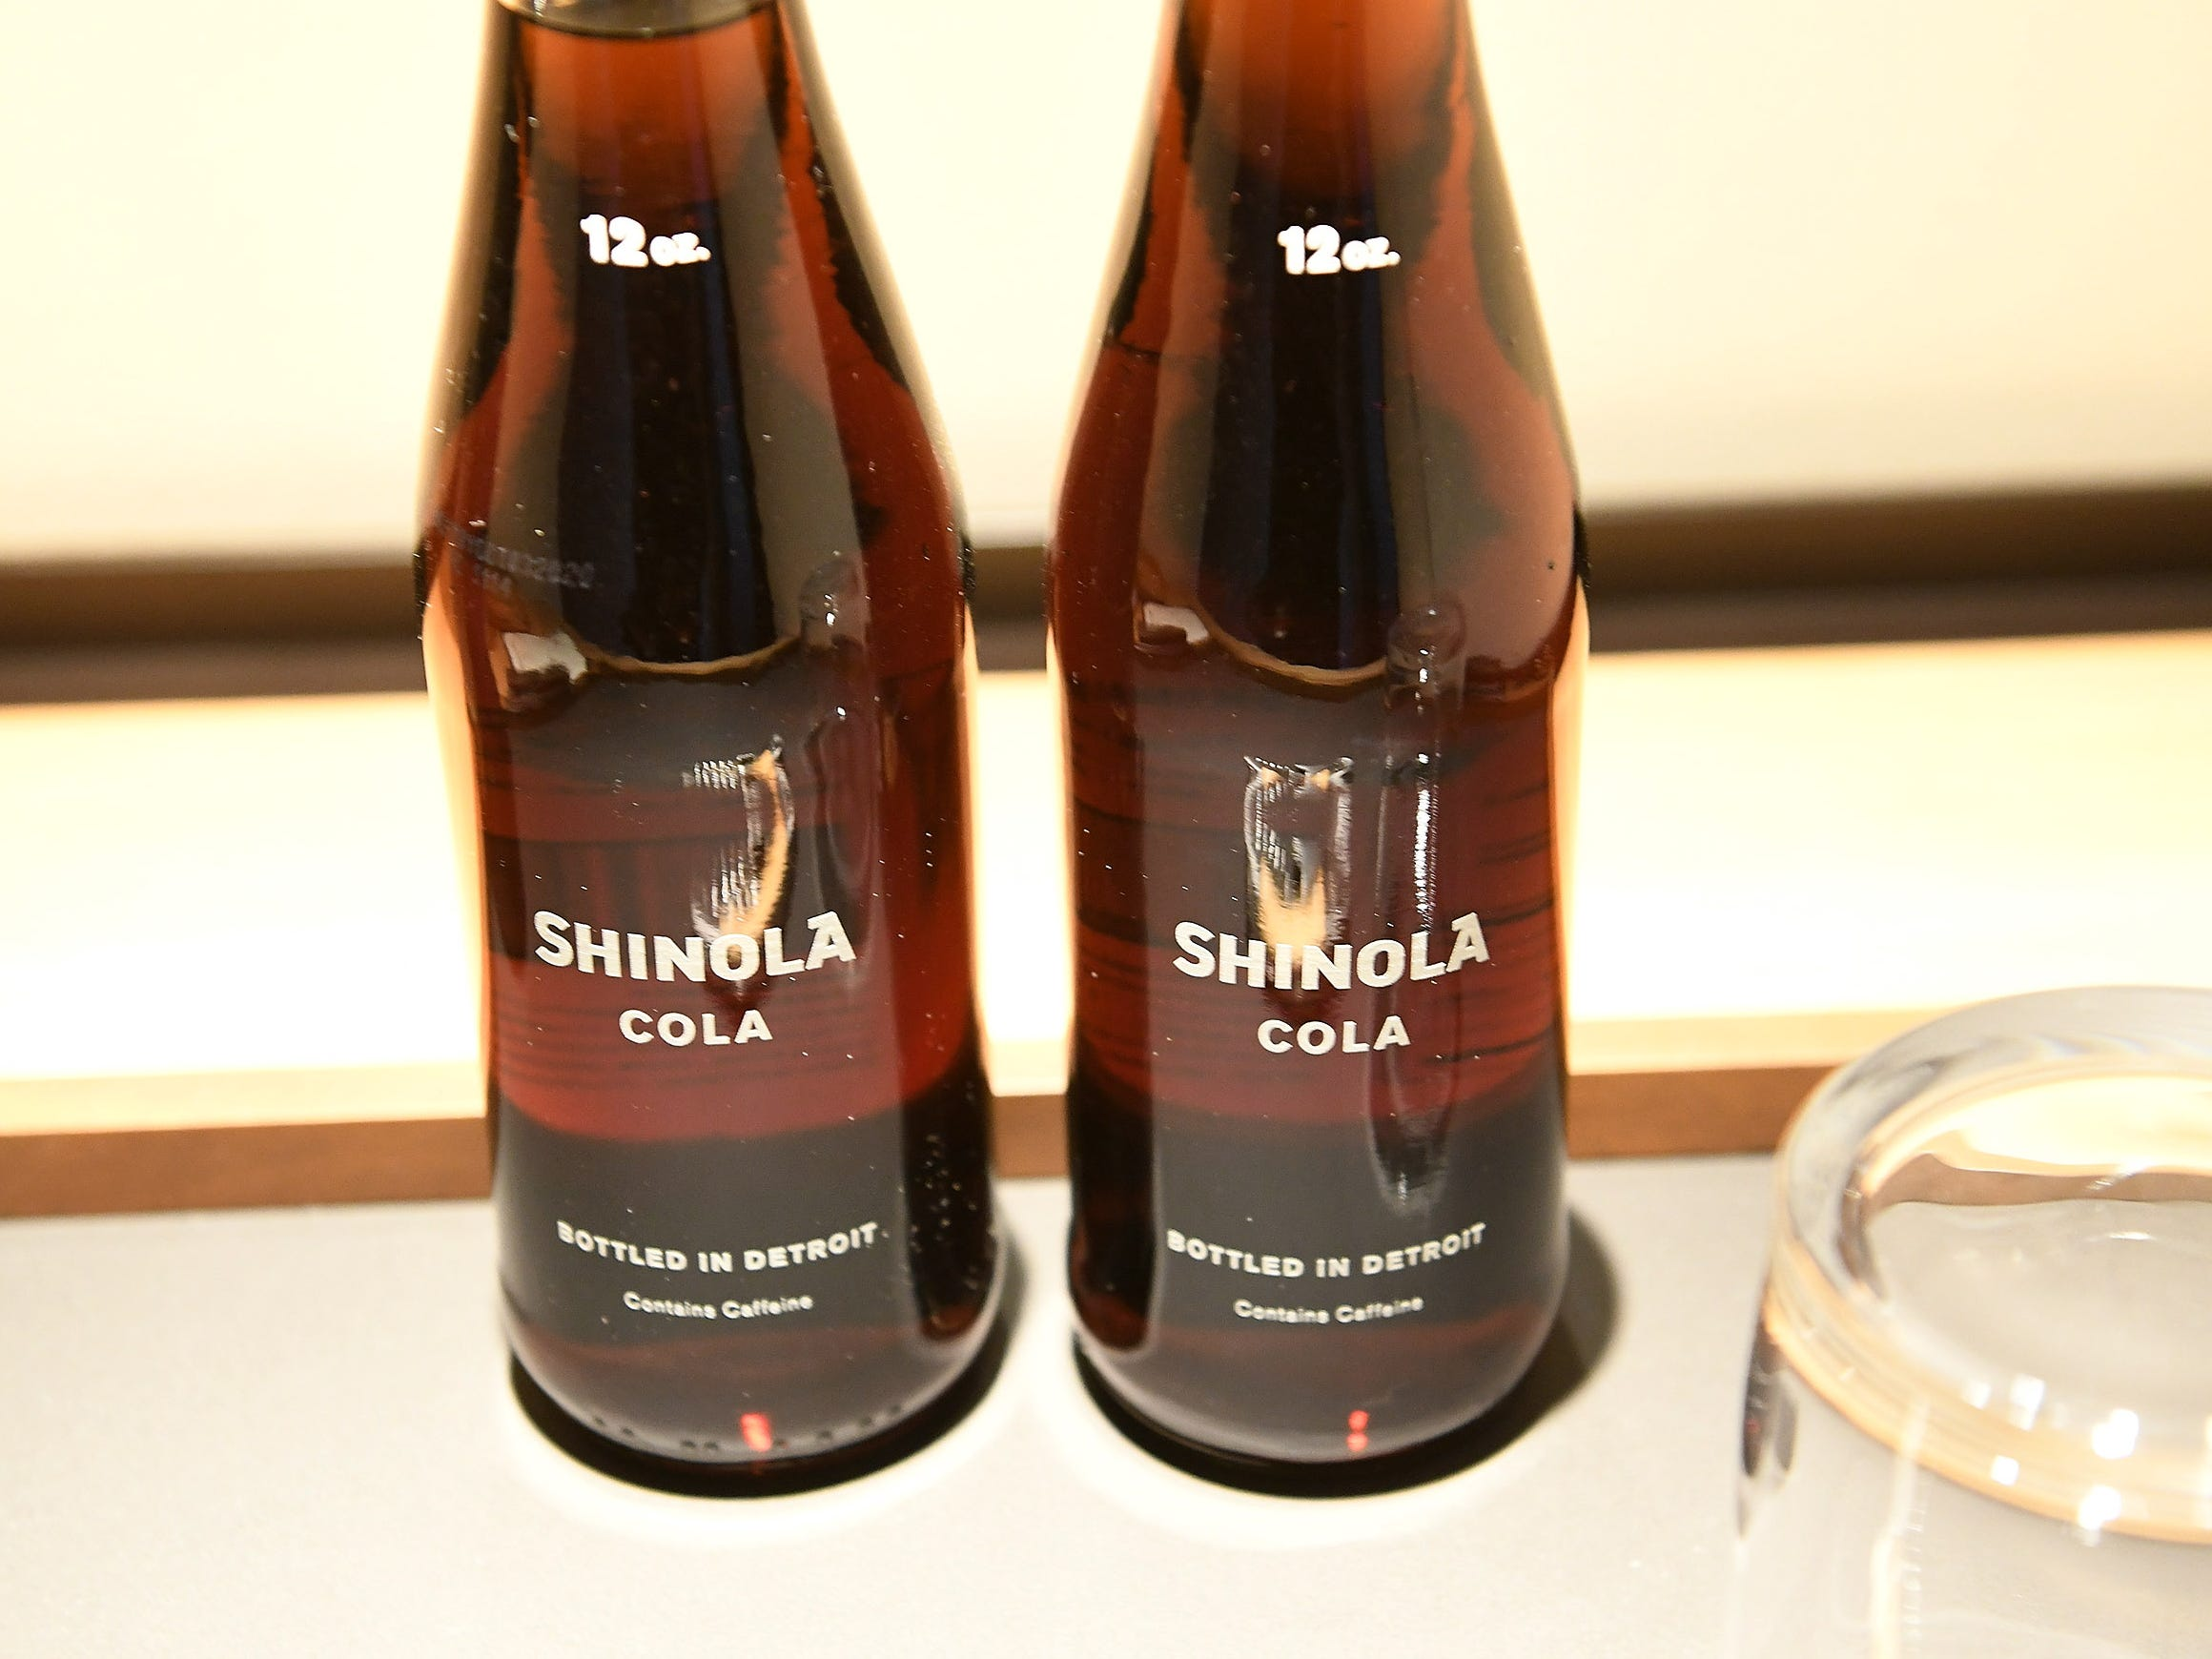 Bottles of Shinola cola in one of the guest rooms.